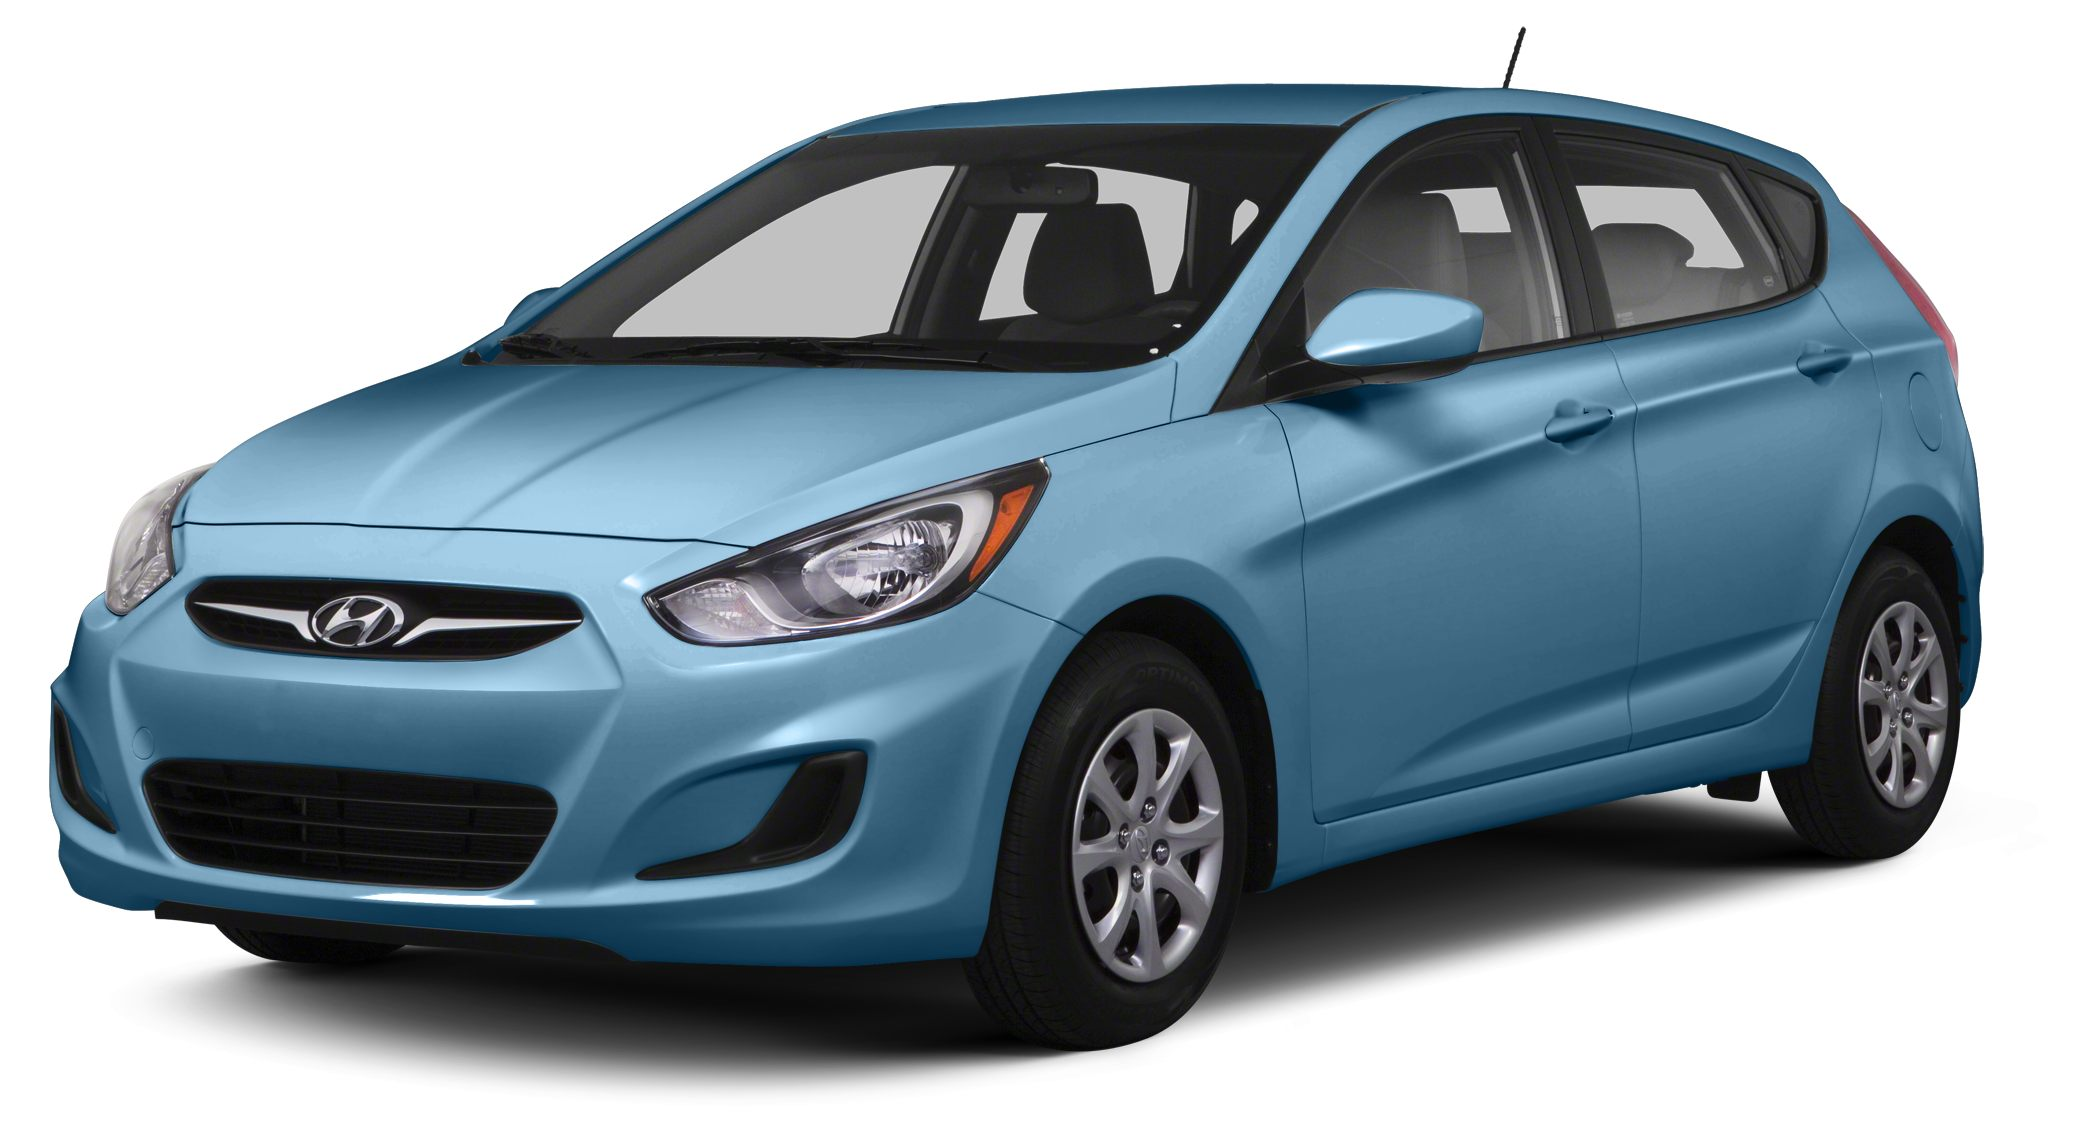 2013 Hyundai Accent SE EPA 37 MPG Hwy28 MPG City CARFAX 1-Owner ONLY 31275 Miles SE trim iPo